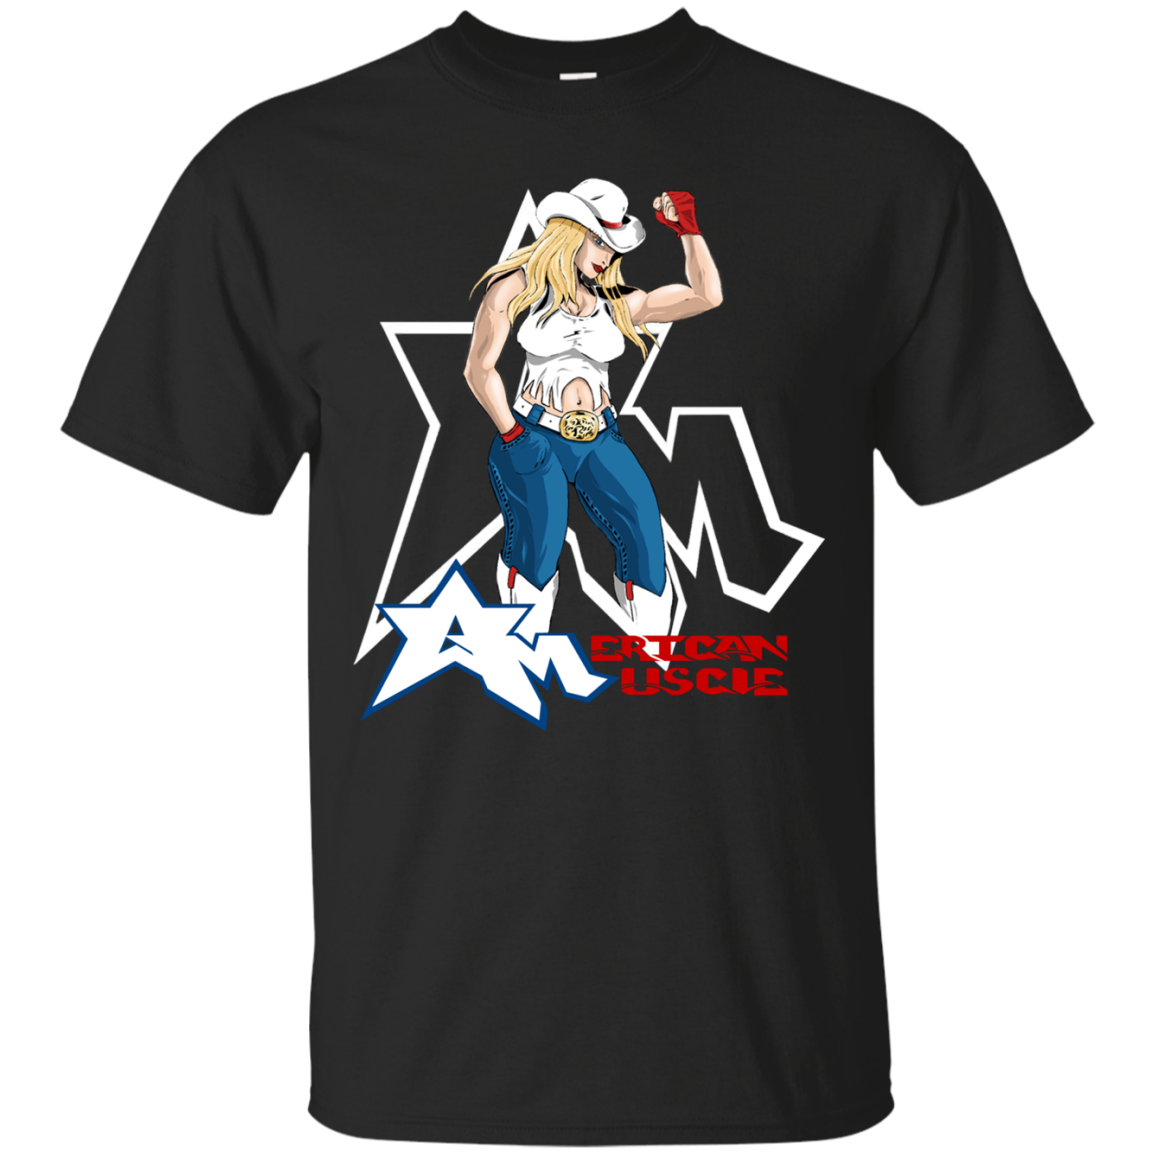 American Muscle Blonde T-Shirts Funny Sports Shirt Football Tee